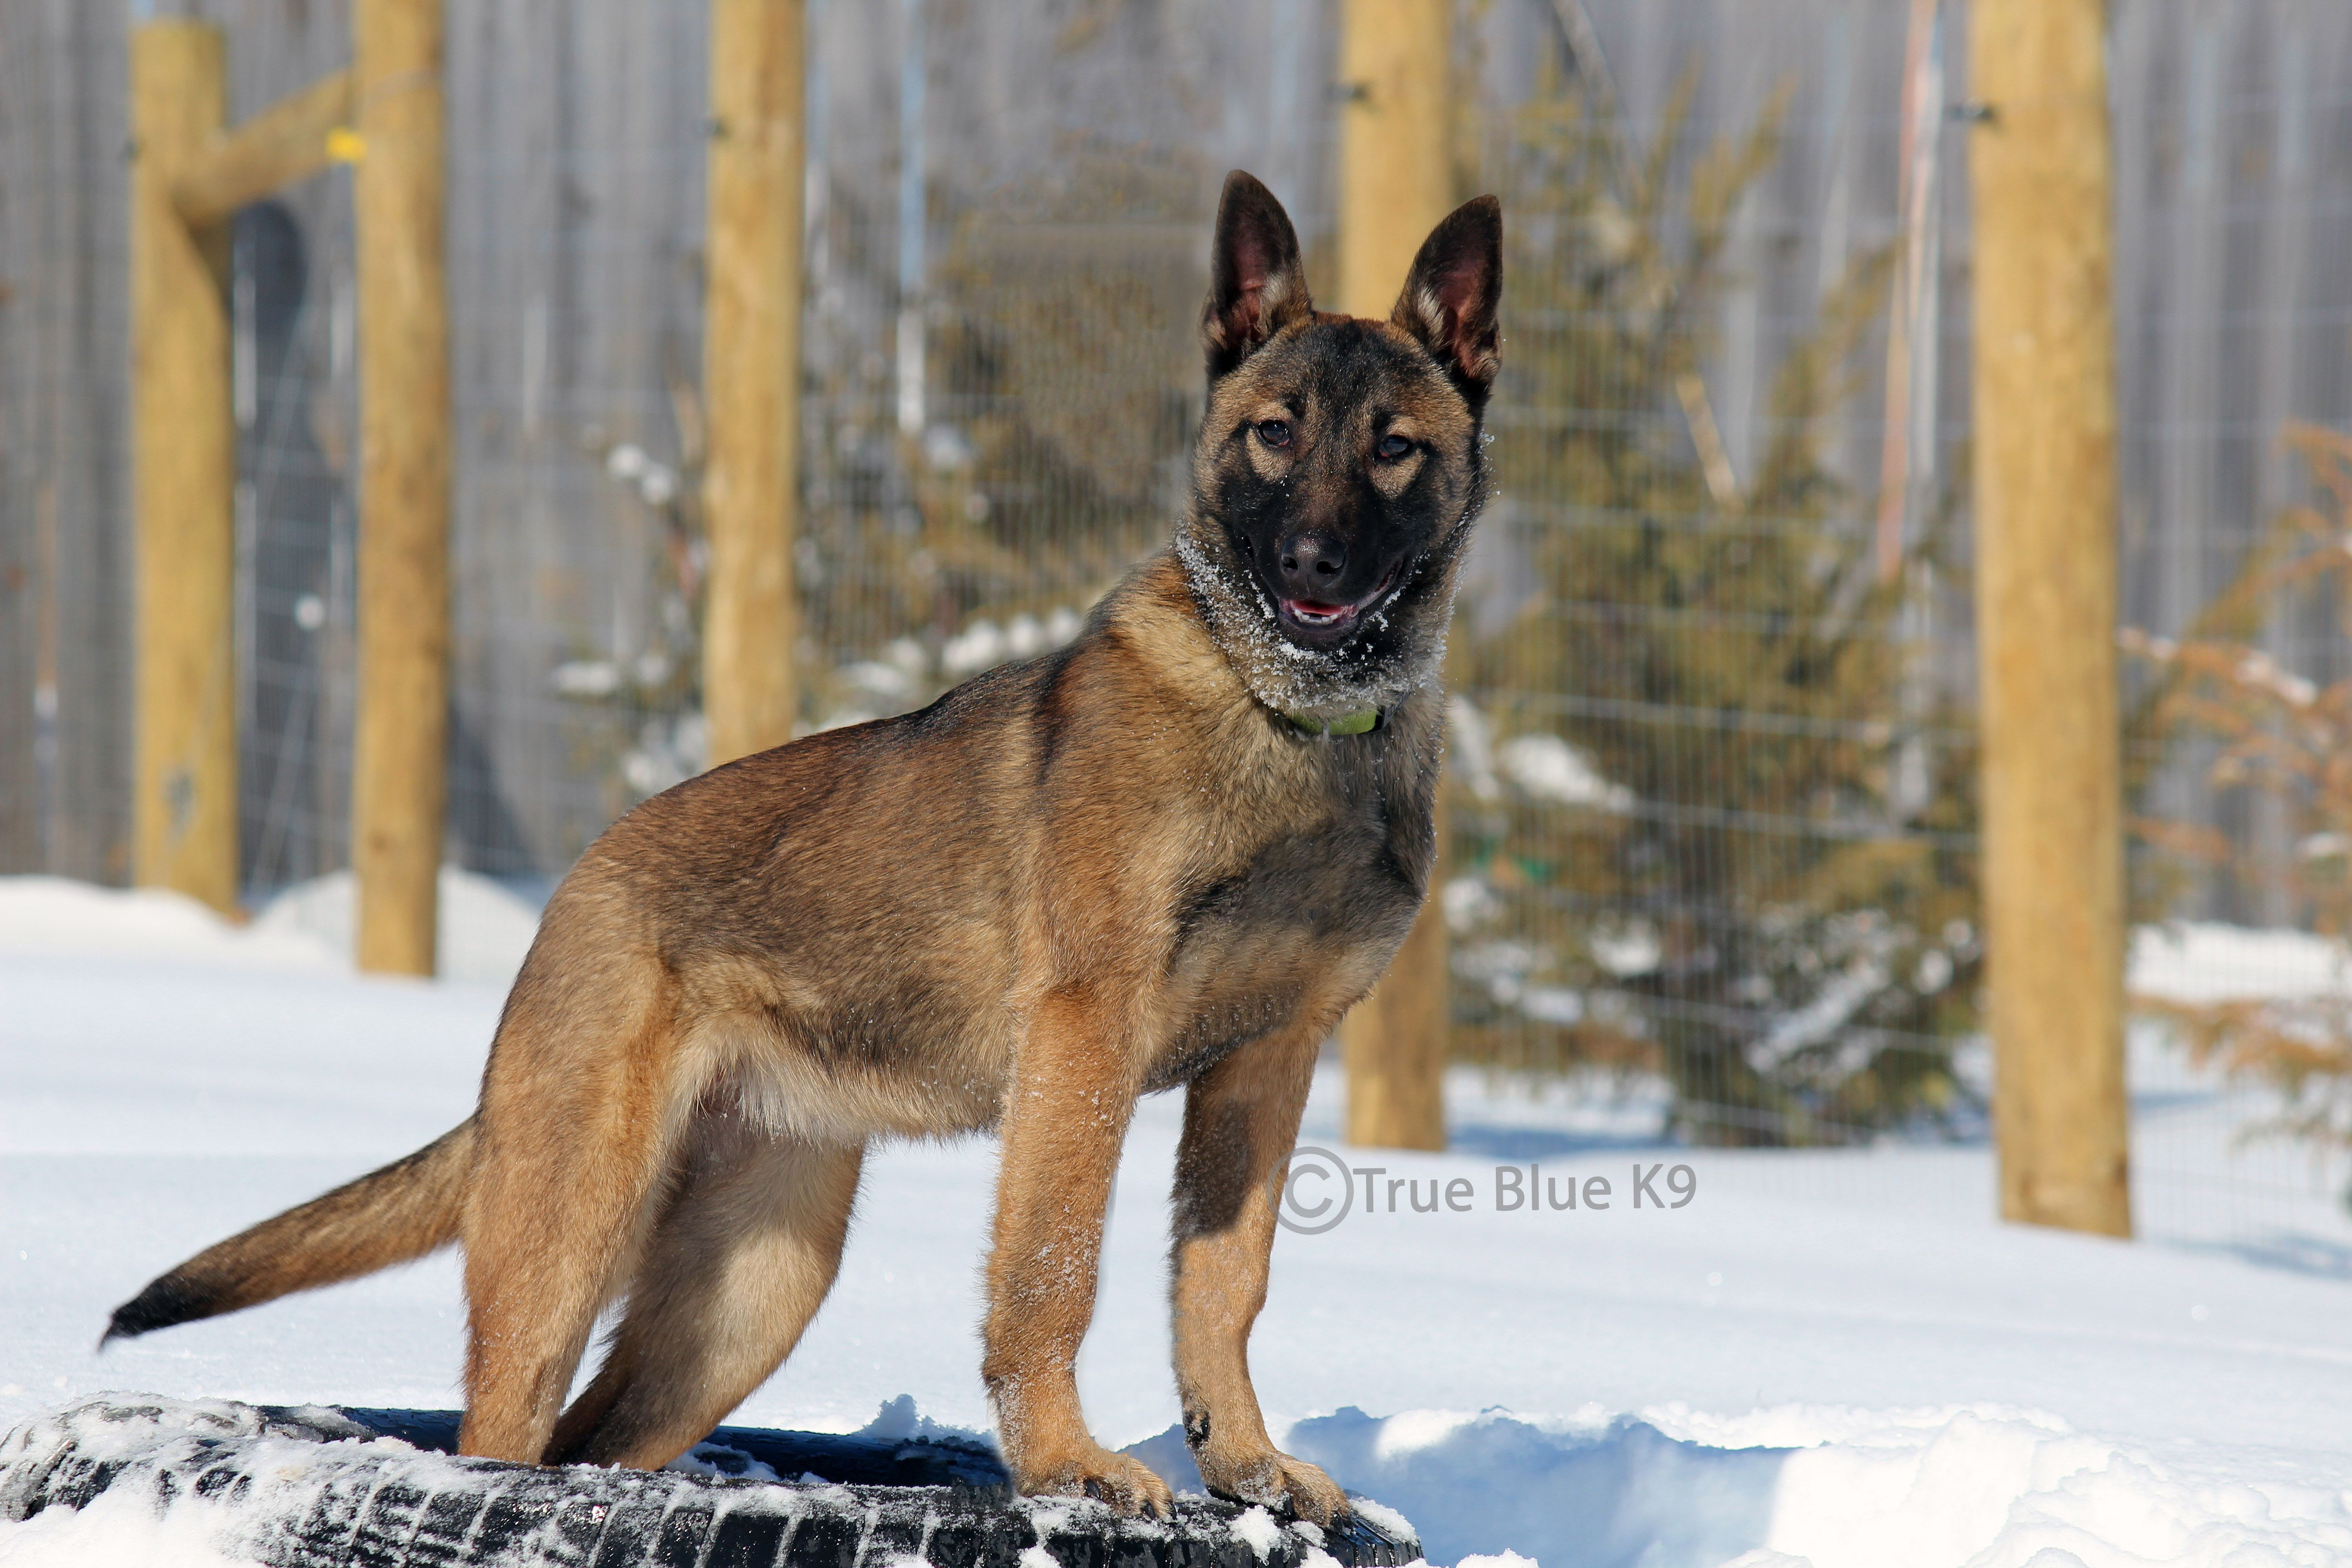 You Mean To Tell Me This White Stuff Is Snow Belgian Malinois Dog Belgian Malinois Malinois Dog